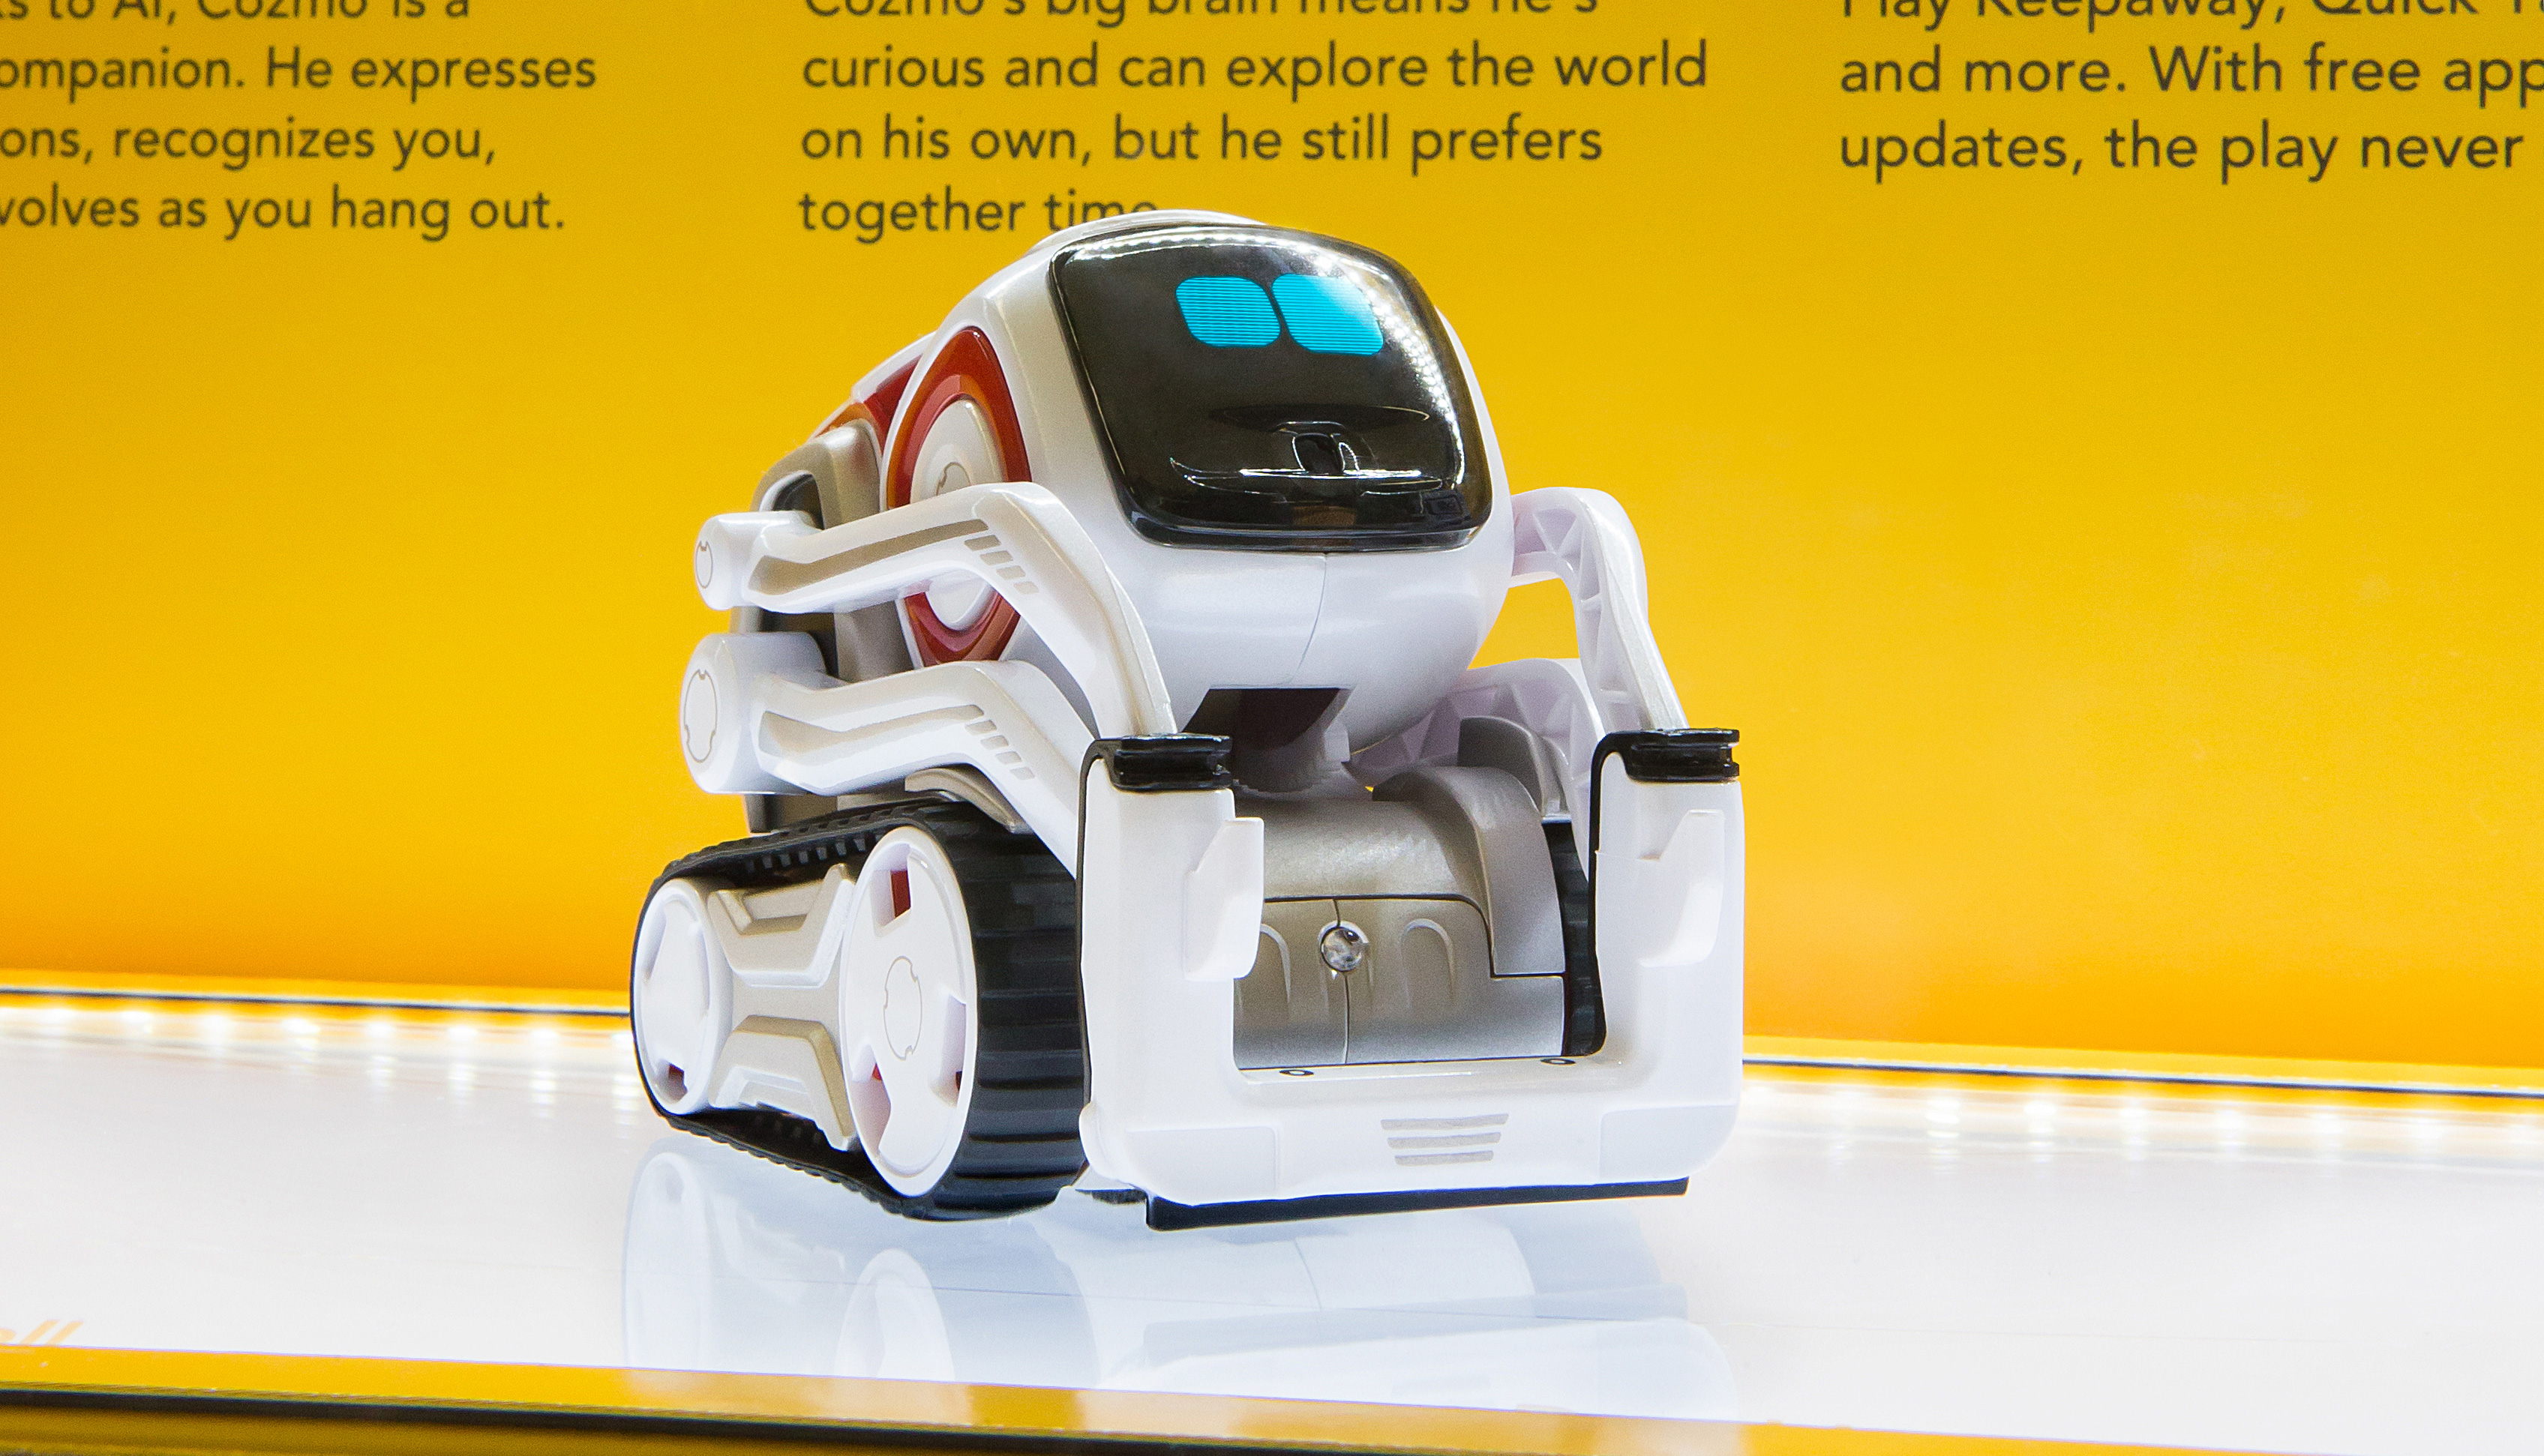 Cozmo the small AI robot on product display with animated face